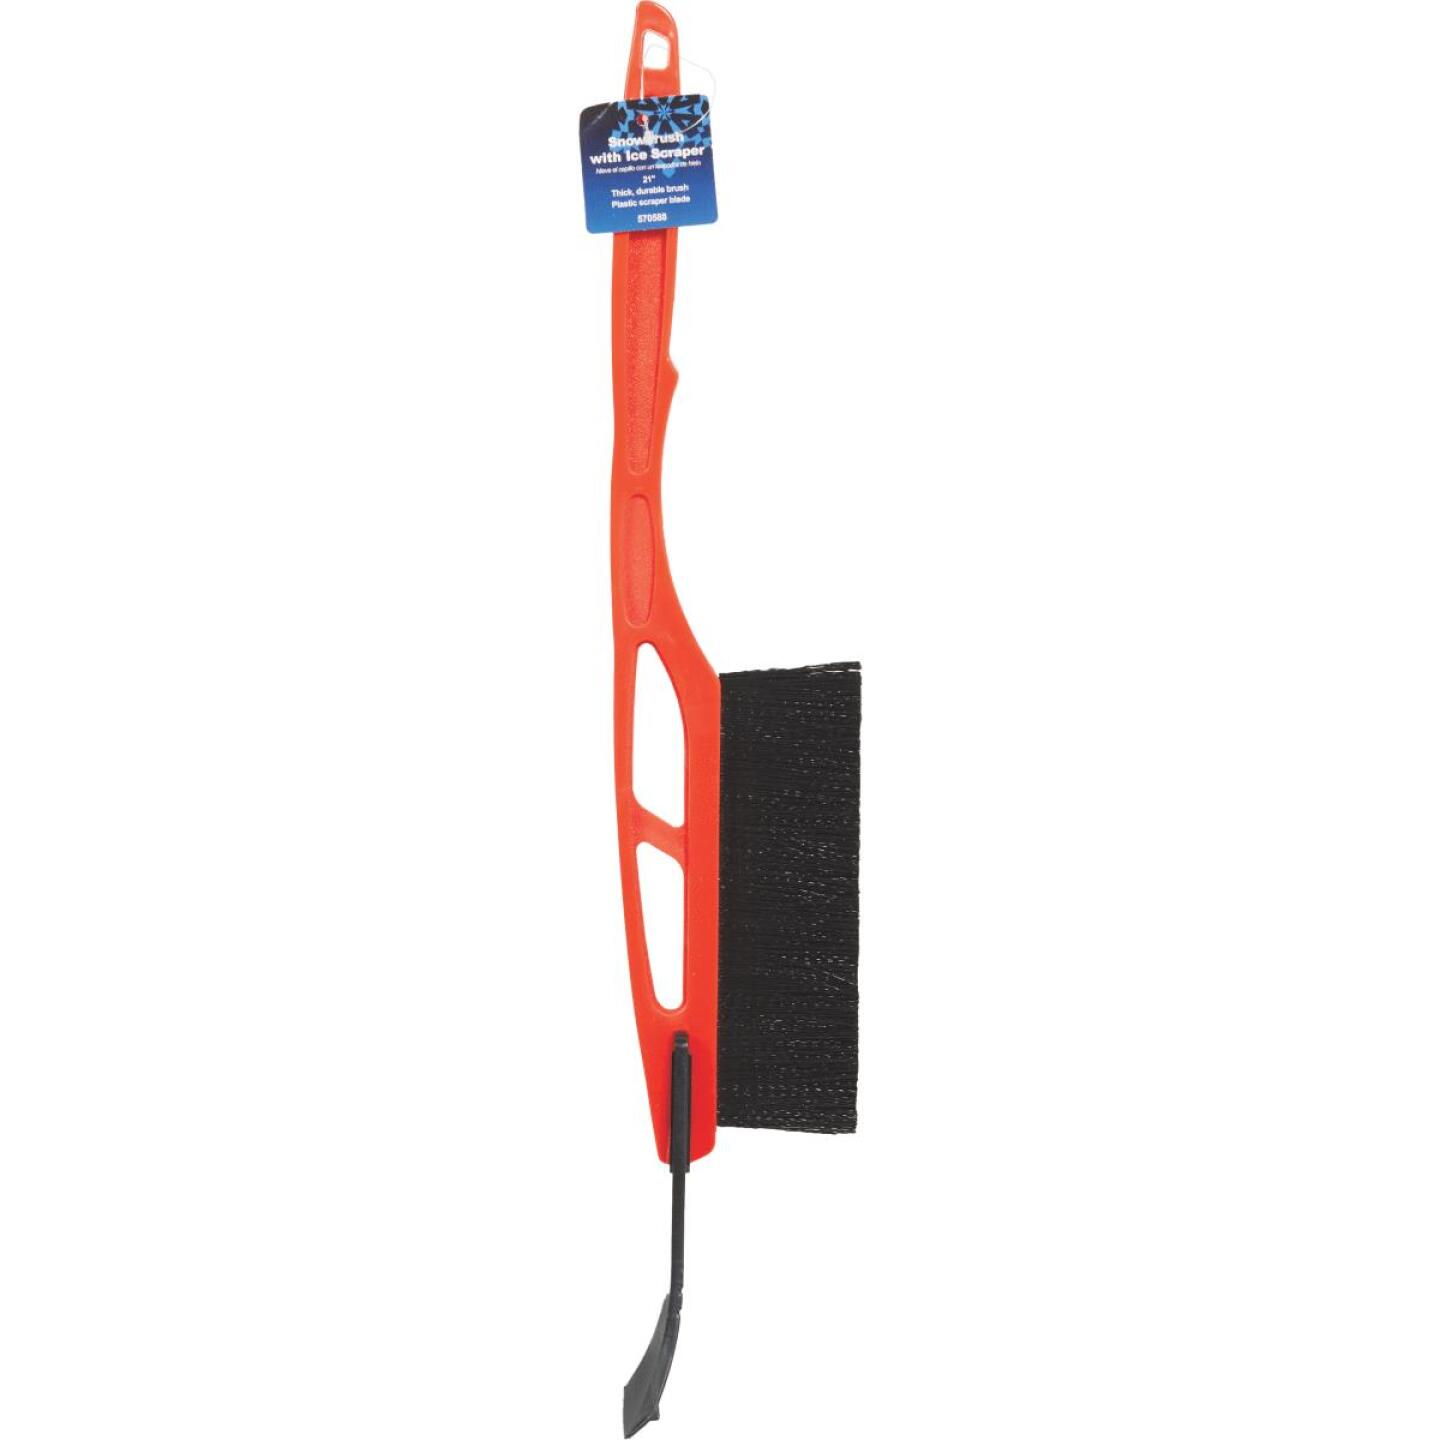 21 In. Plastic Snowbrush with Ice Scraper Image 2